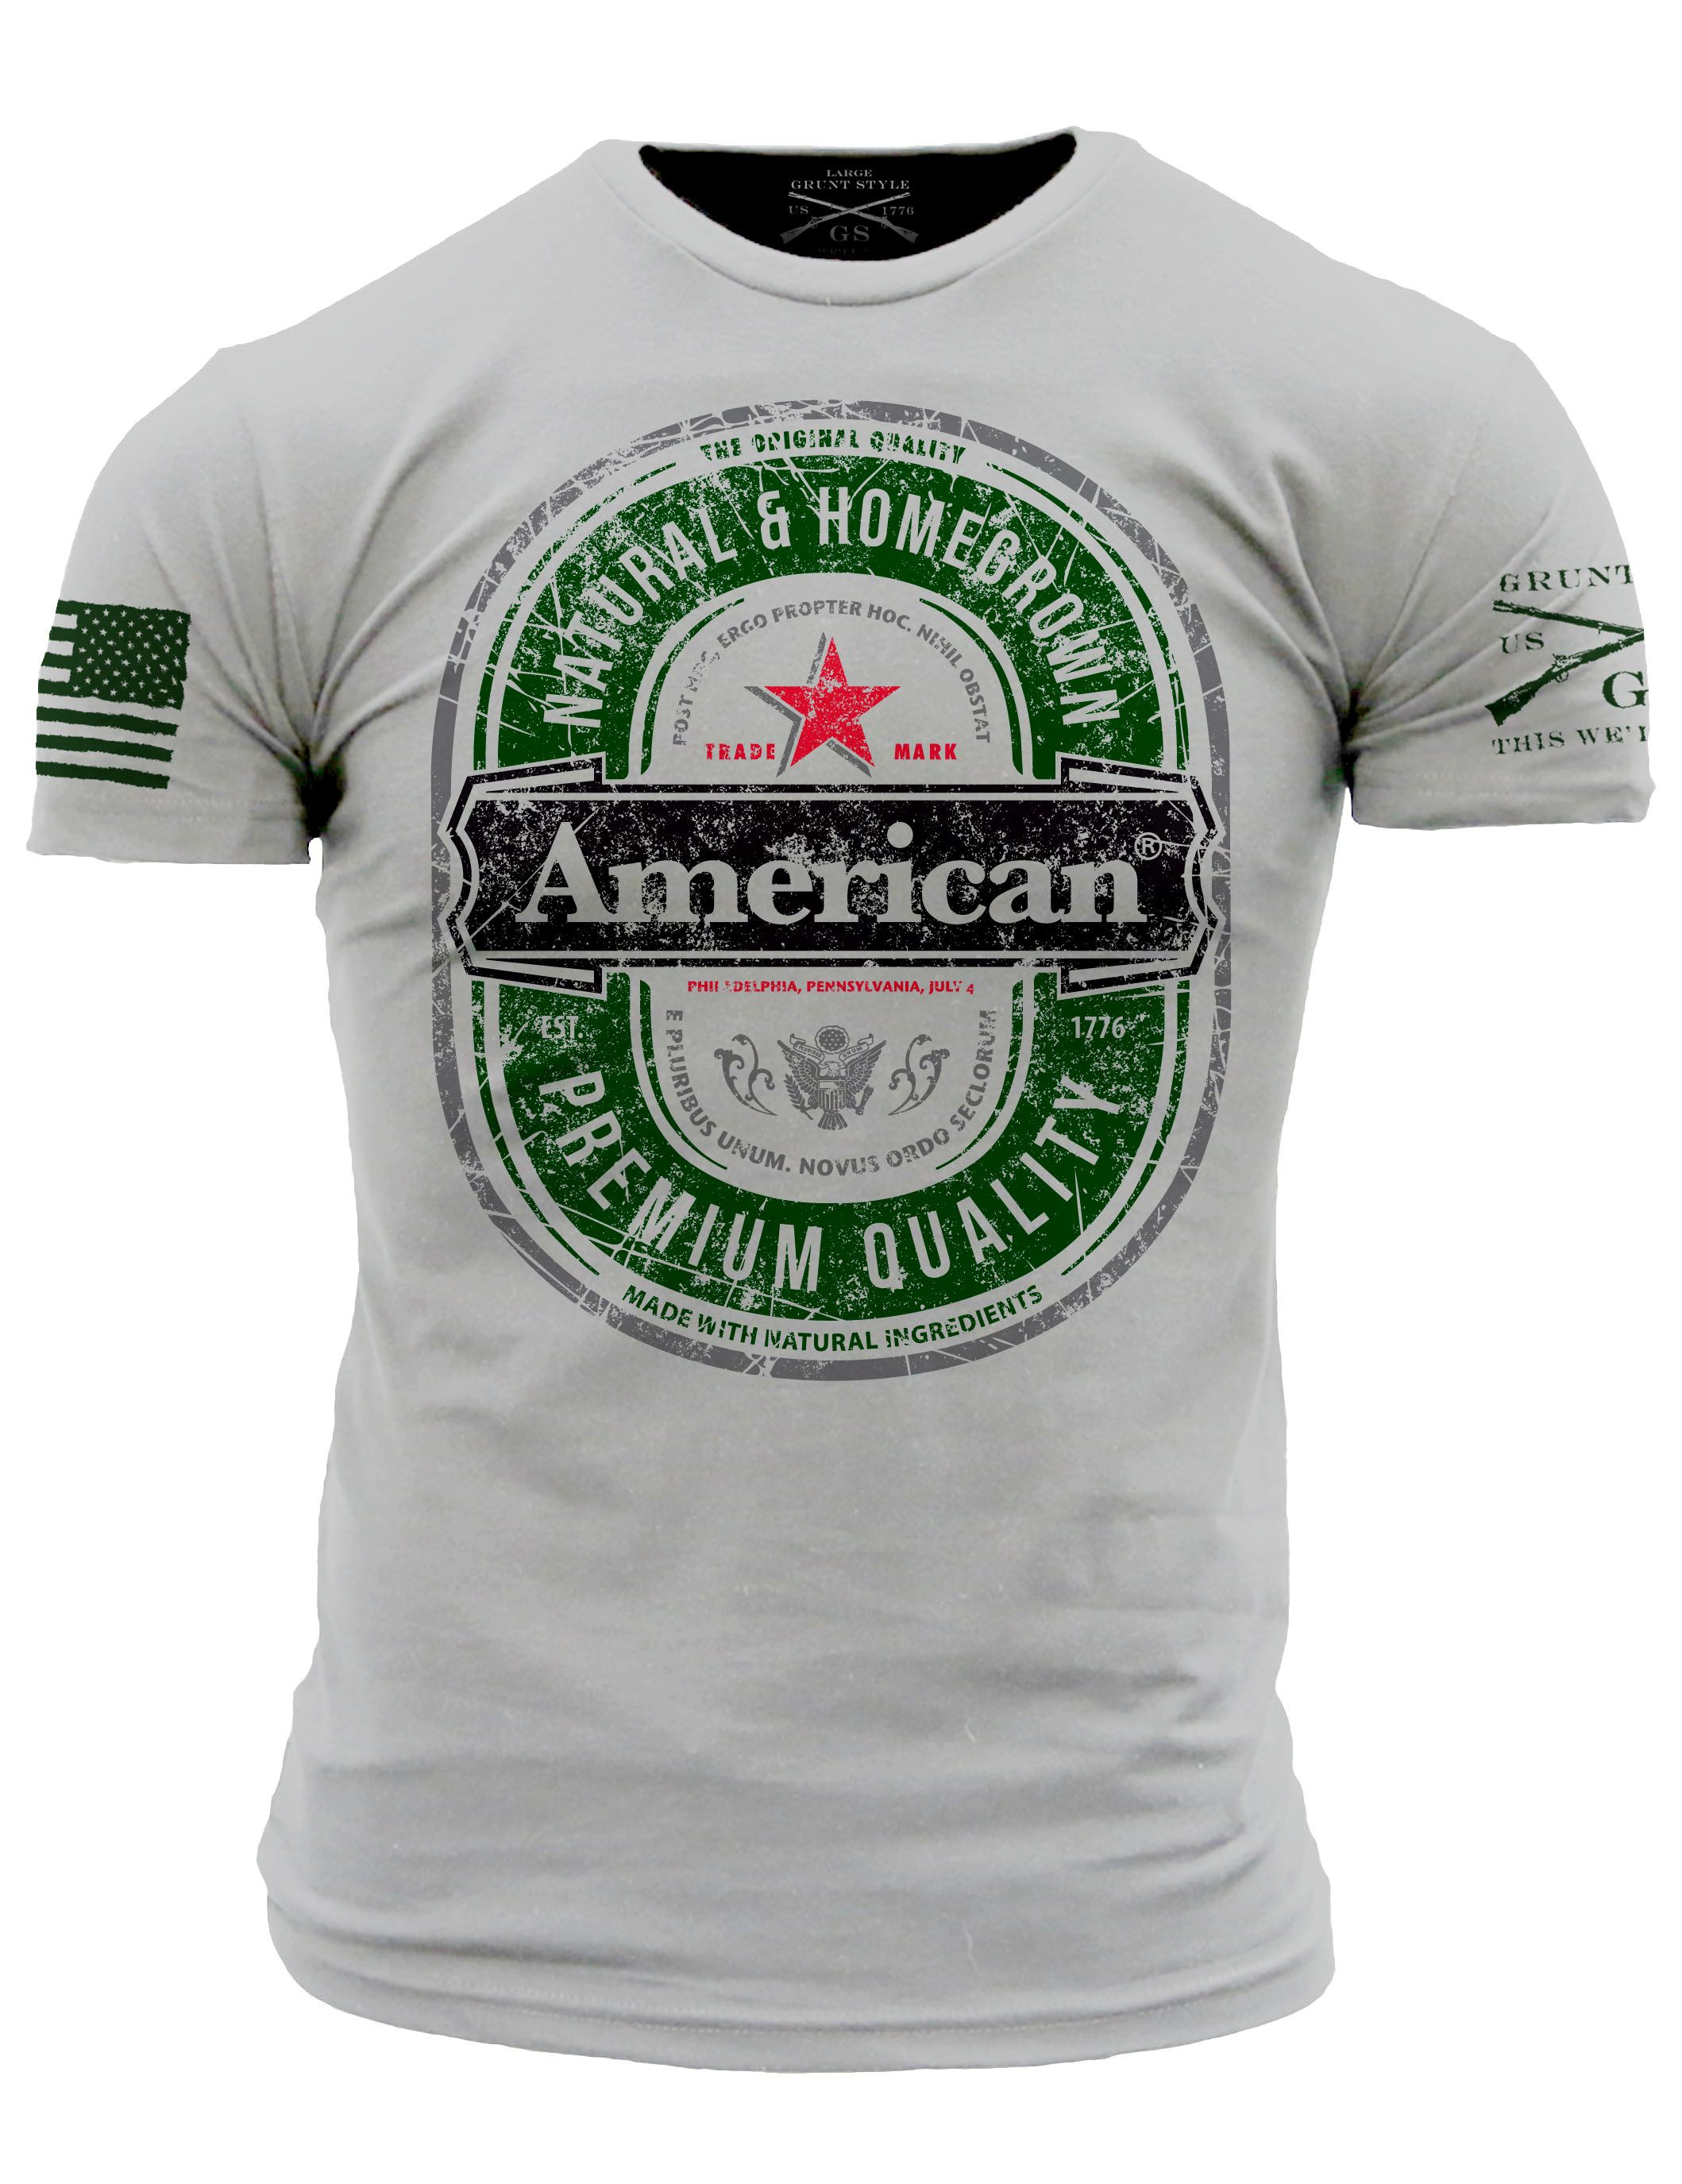 Crack open our newest shirt, it's refreshingly American. Get yours quick, while supplies last. Starts shipping on Monday.